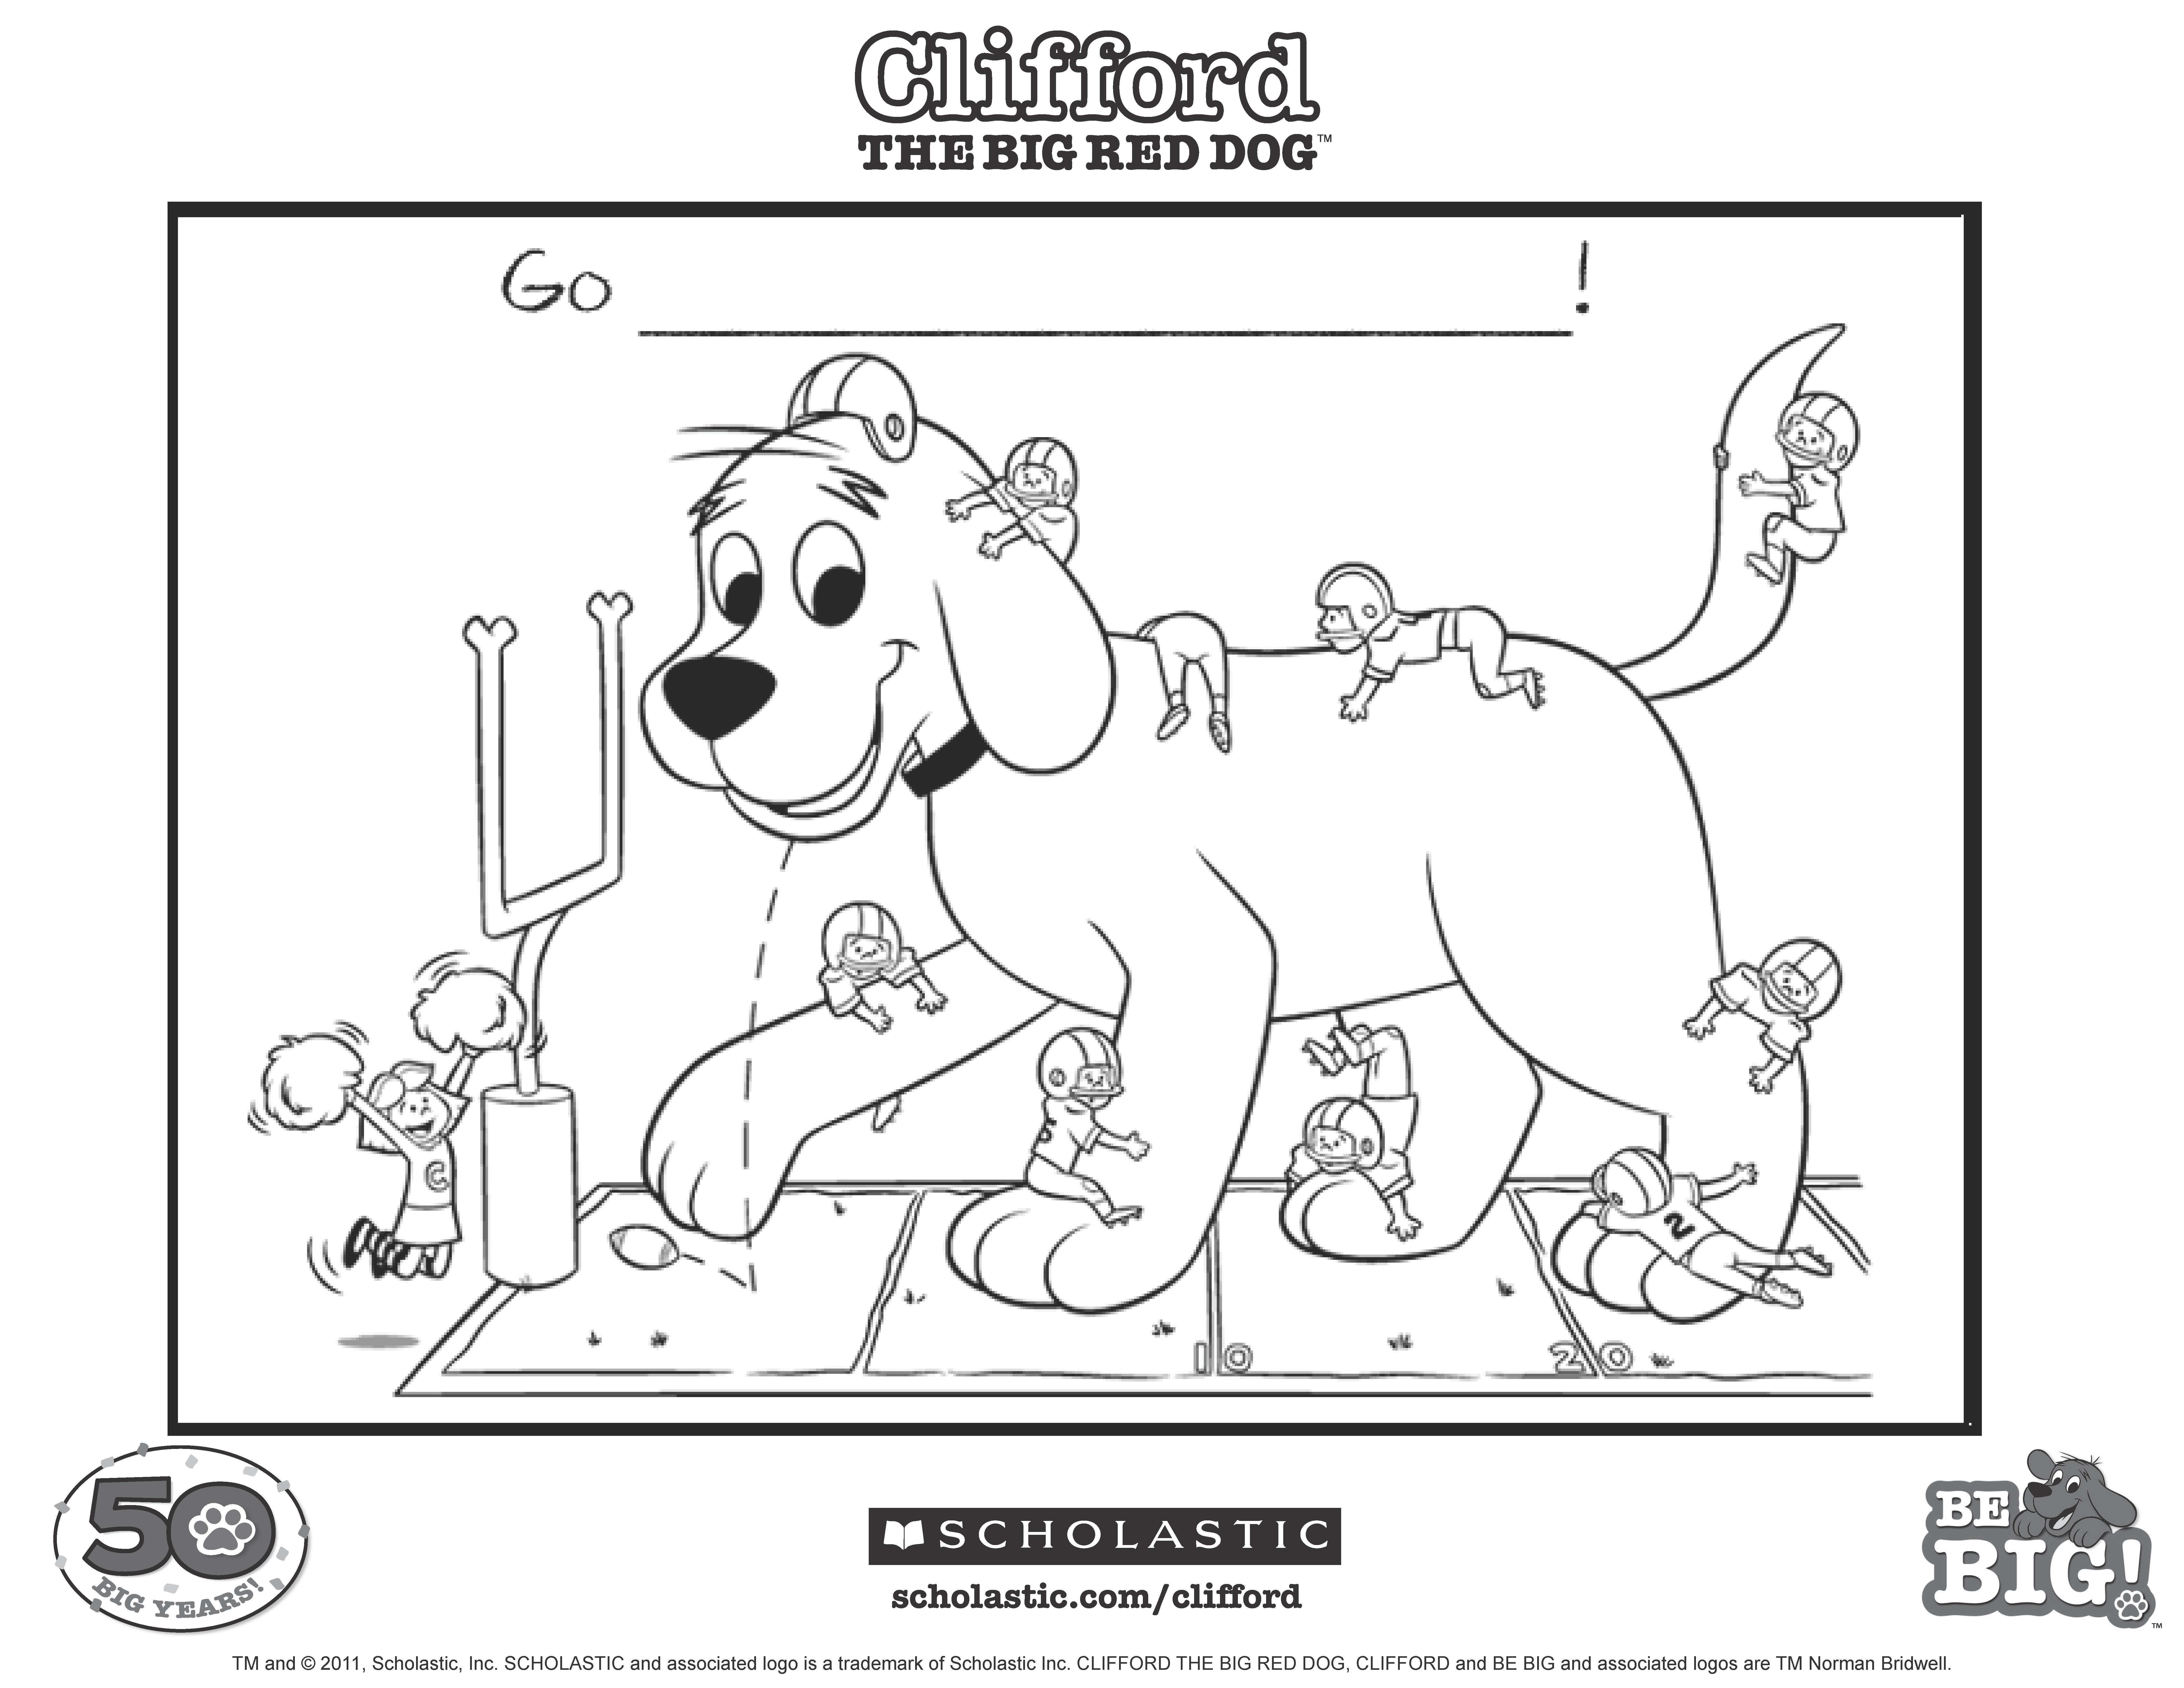 Who are you rooting for in the Super Bowl? Personalize this coloring ...